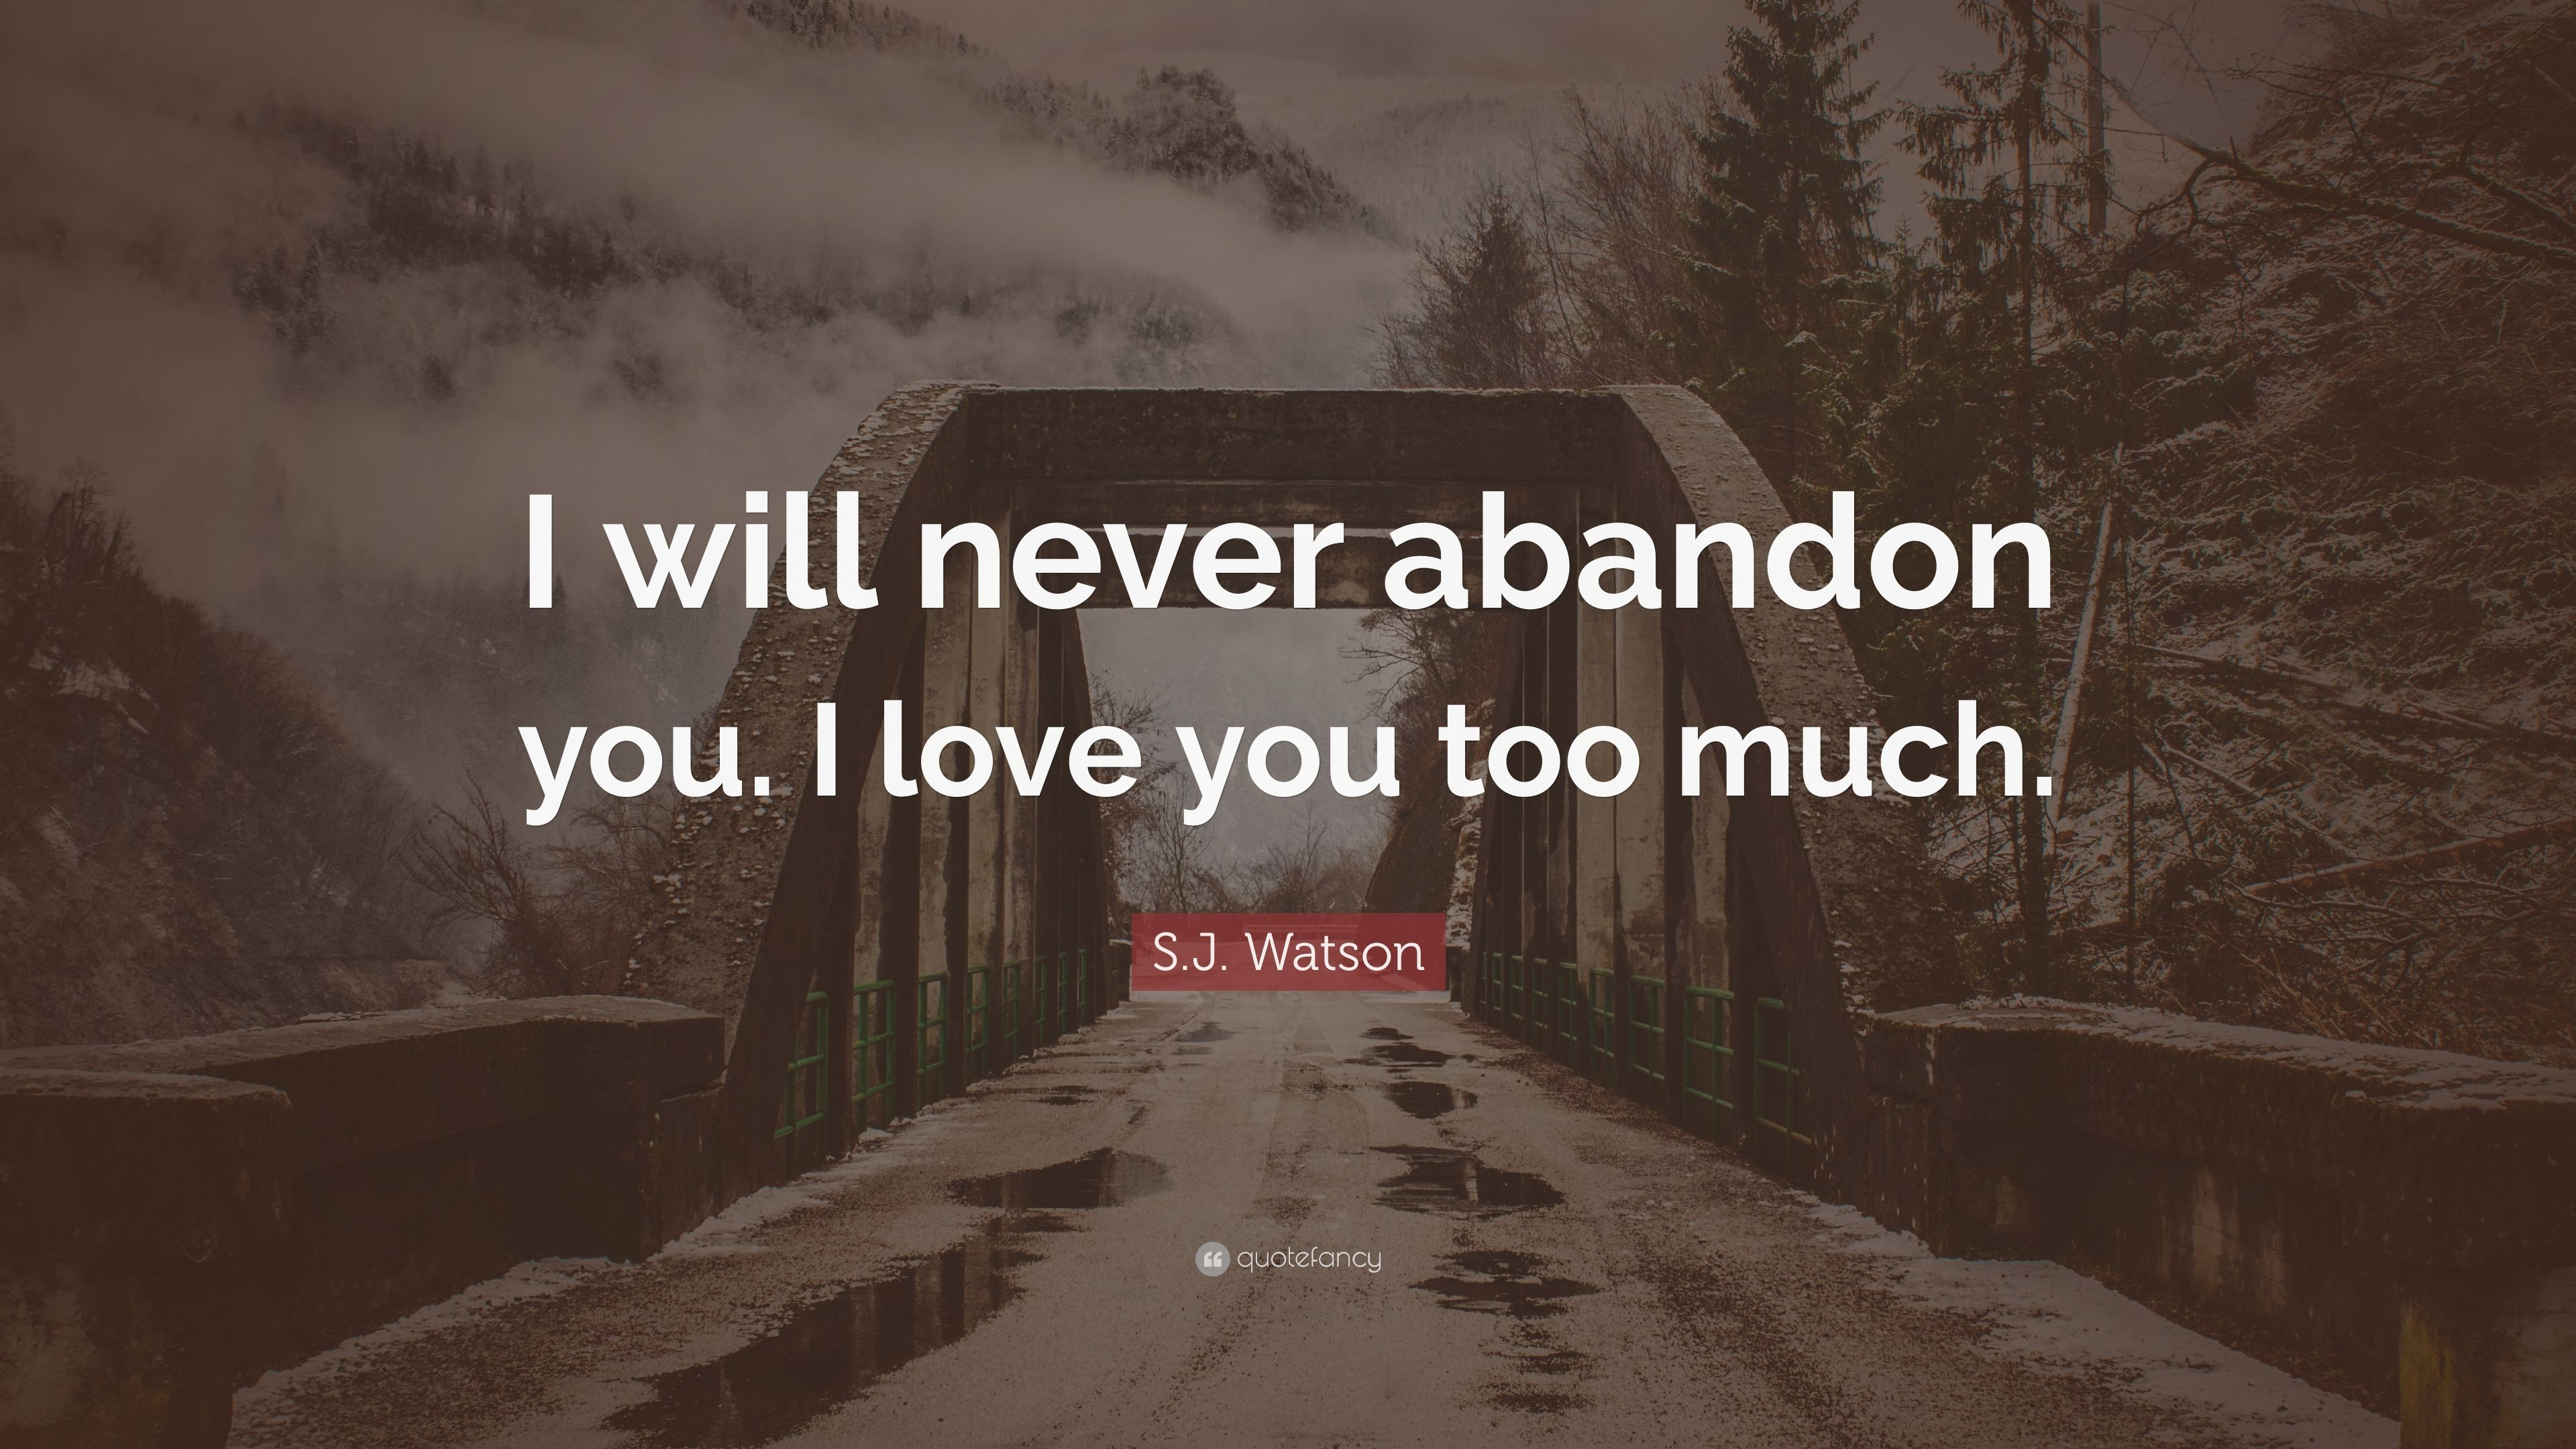 Sj Watson Quote I Will Never Abandon You I Love You Too Much